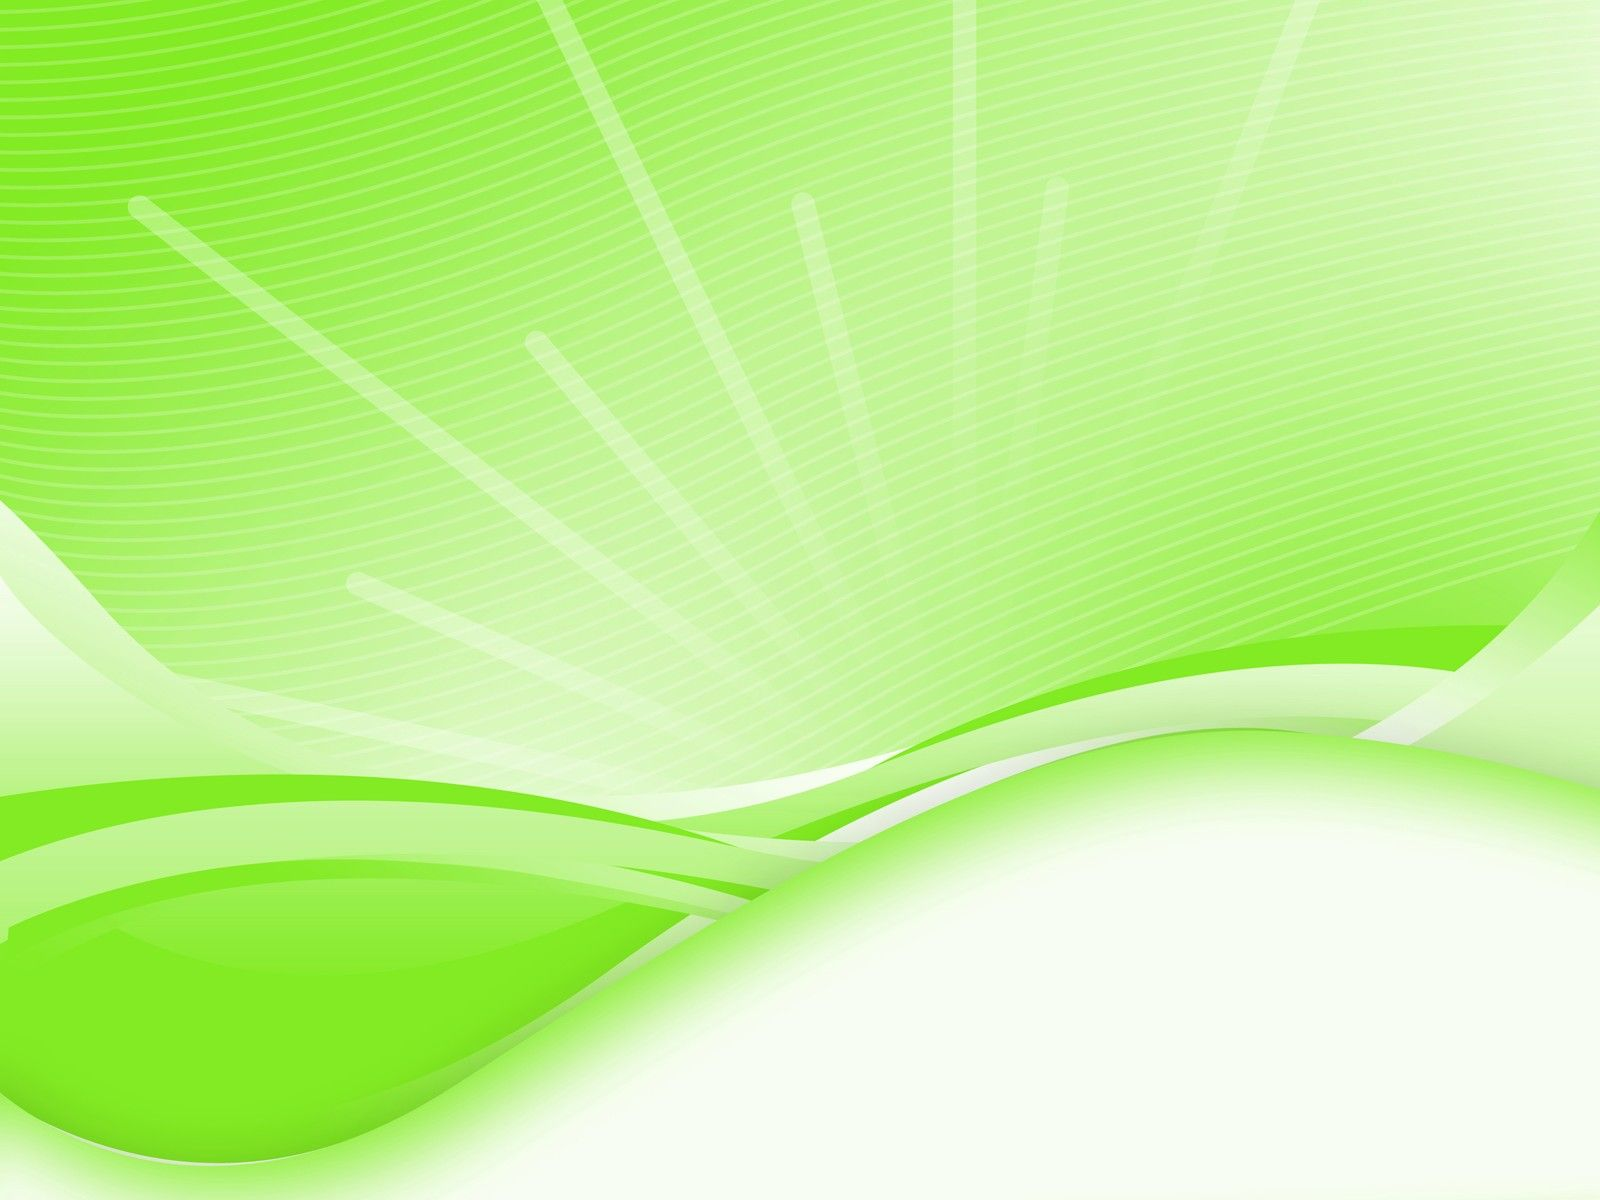 Green Abstract Wallpapers - Top Free Green Abstract ...Green Abstract Wallpaper